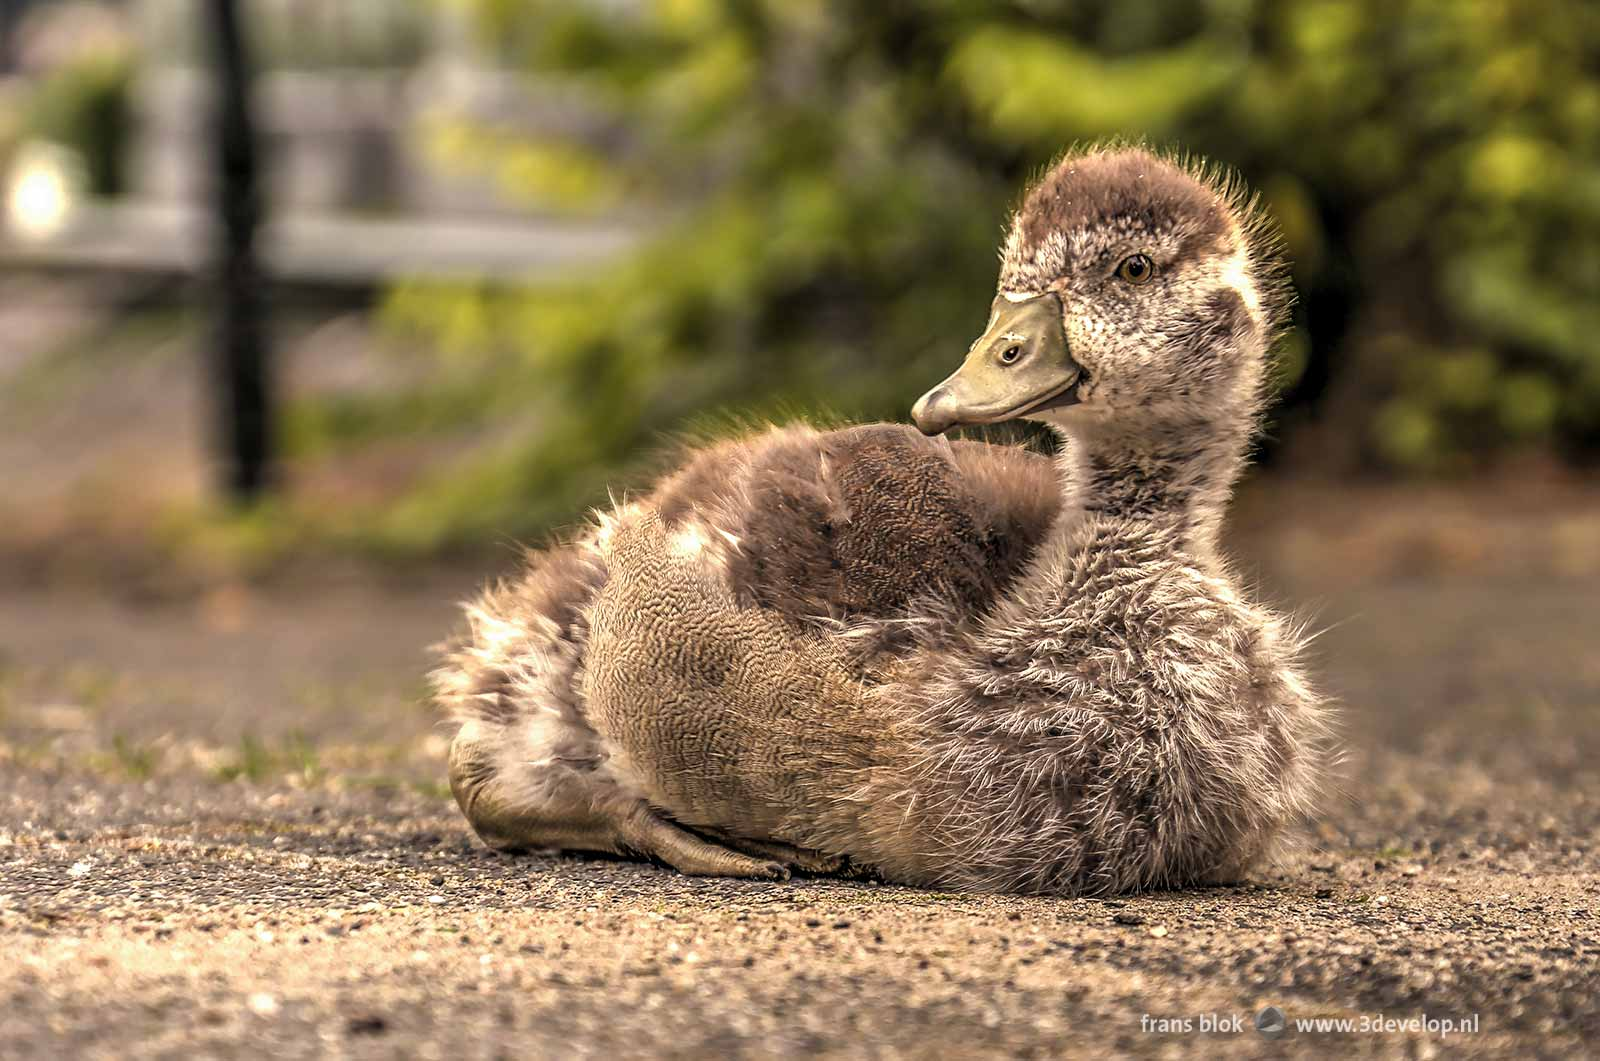 A young urban Nile Gosling on the sidewalk in the Veerhaven in Rotterdam